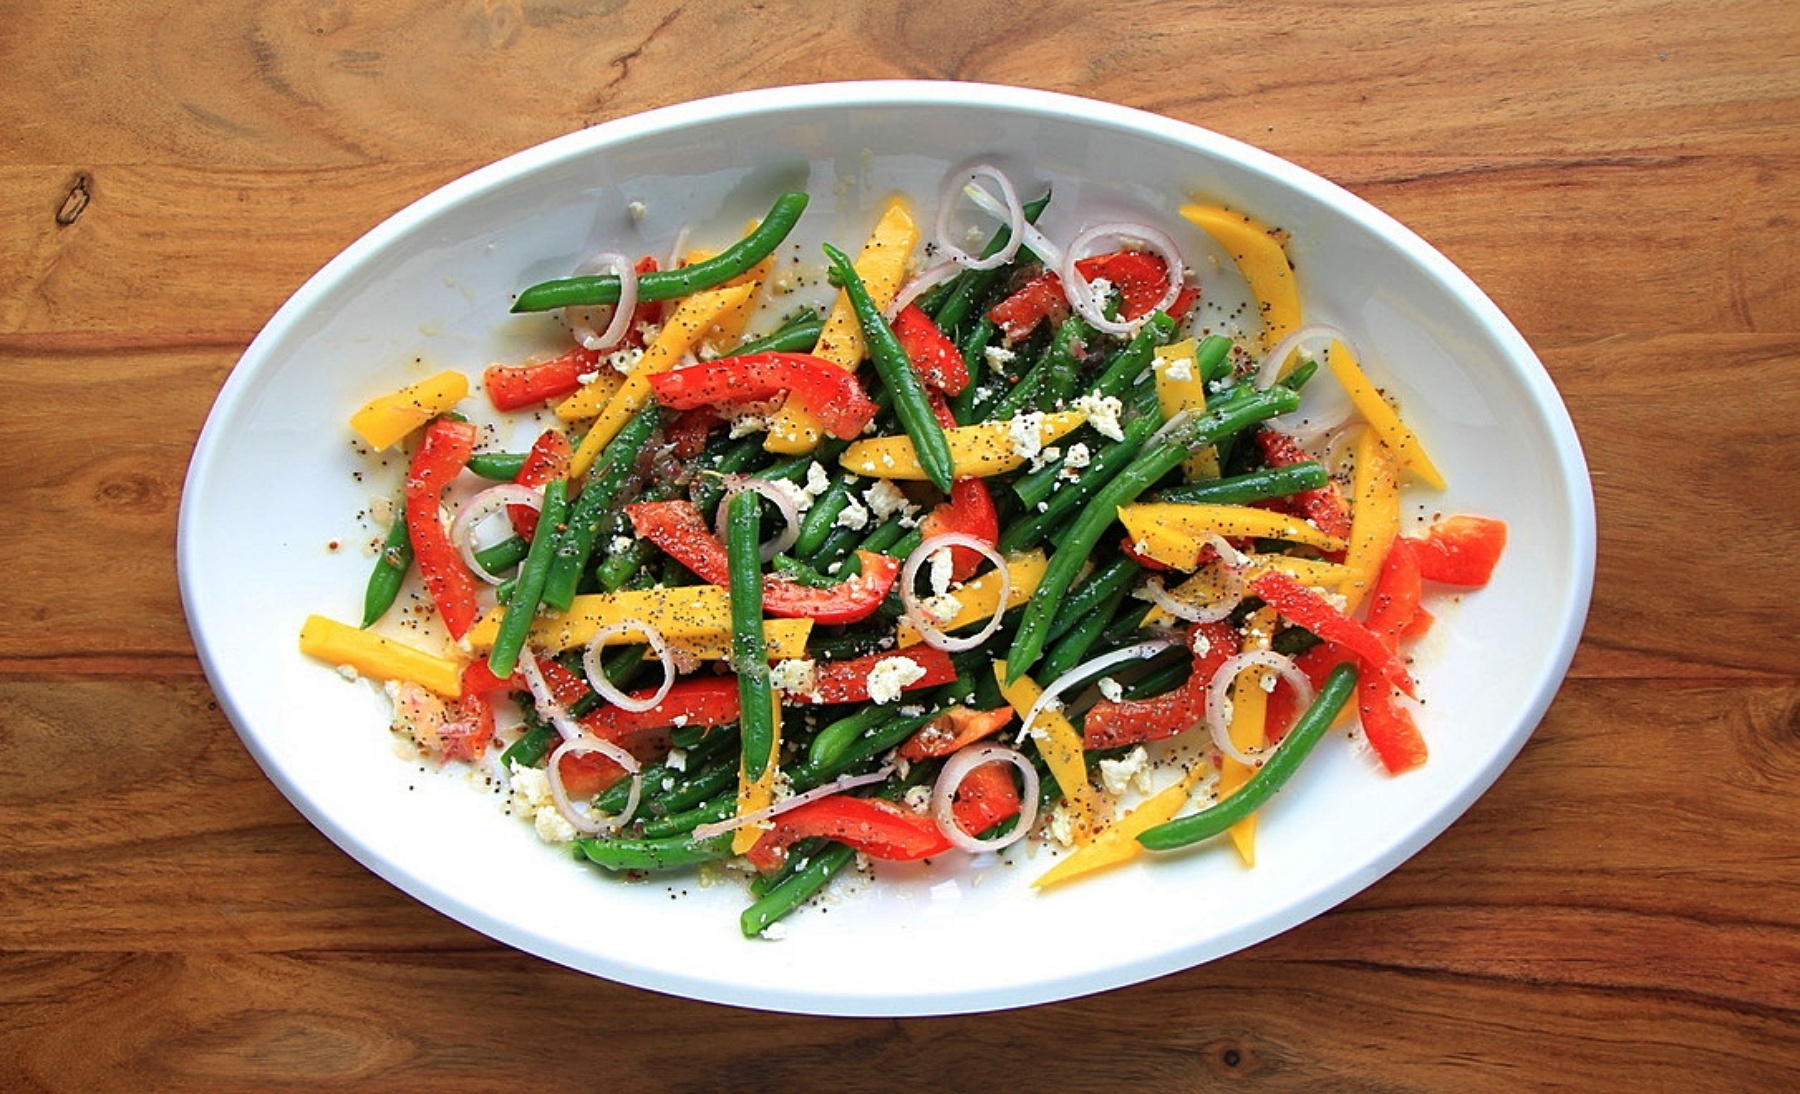 Cold Green Bean Salad with Mango and Red Peppers